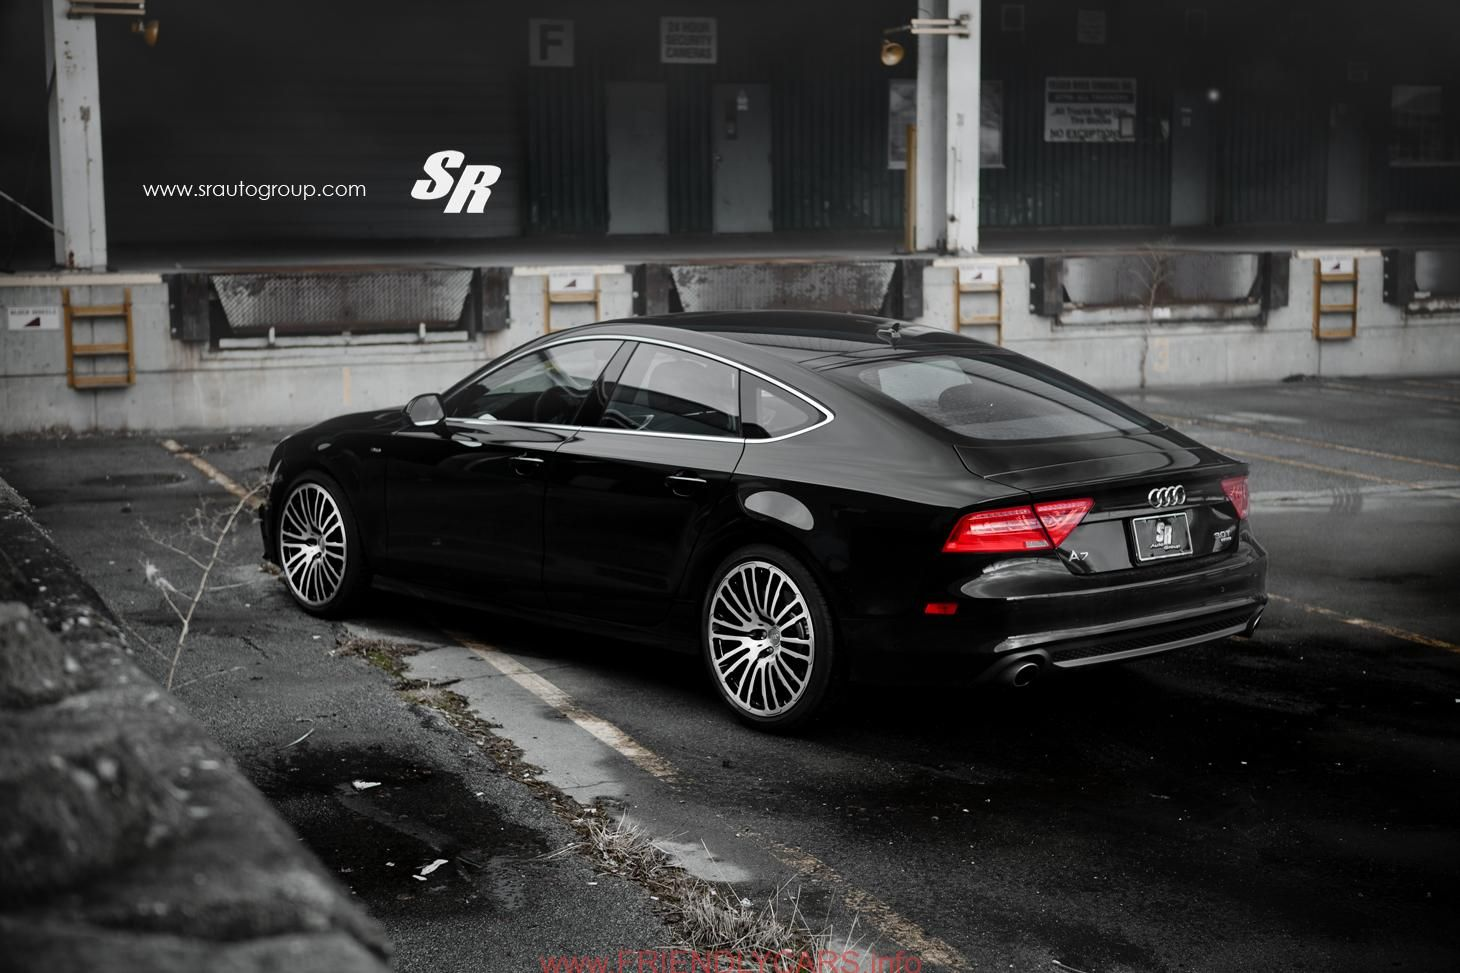 cool audi a7 black edition car images hd Volkswagen Golf I Chocolate Brown  Picture 14 1983